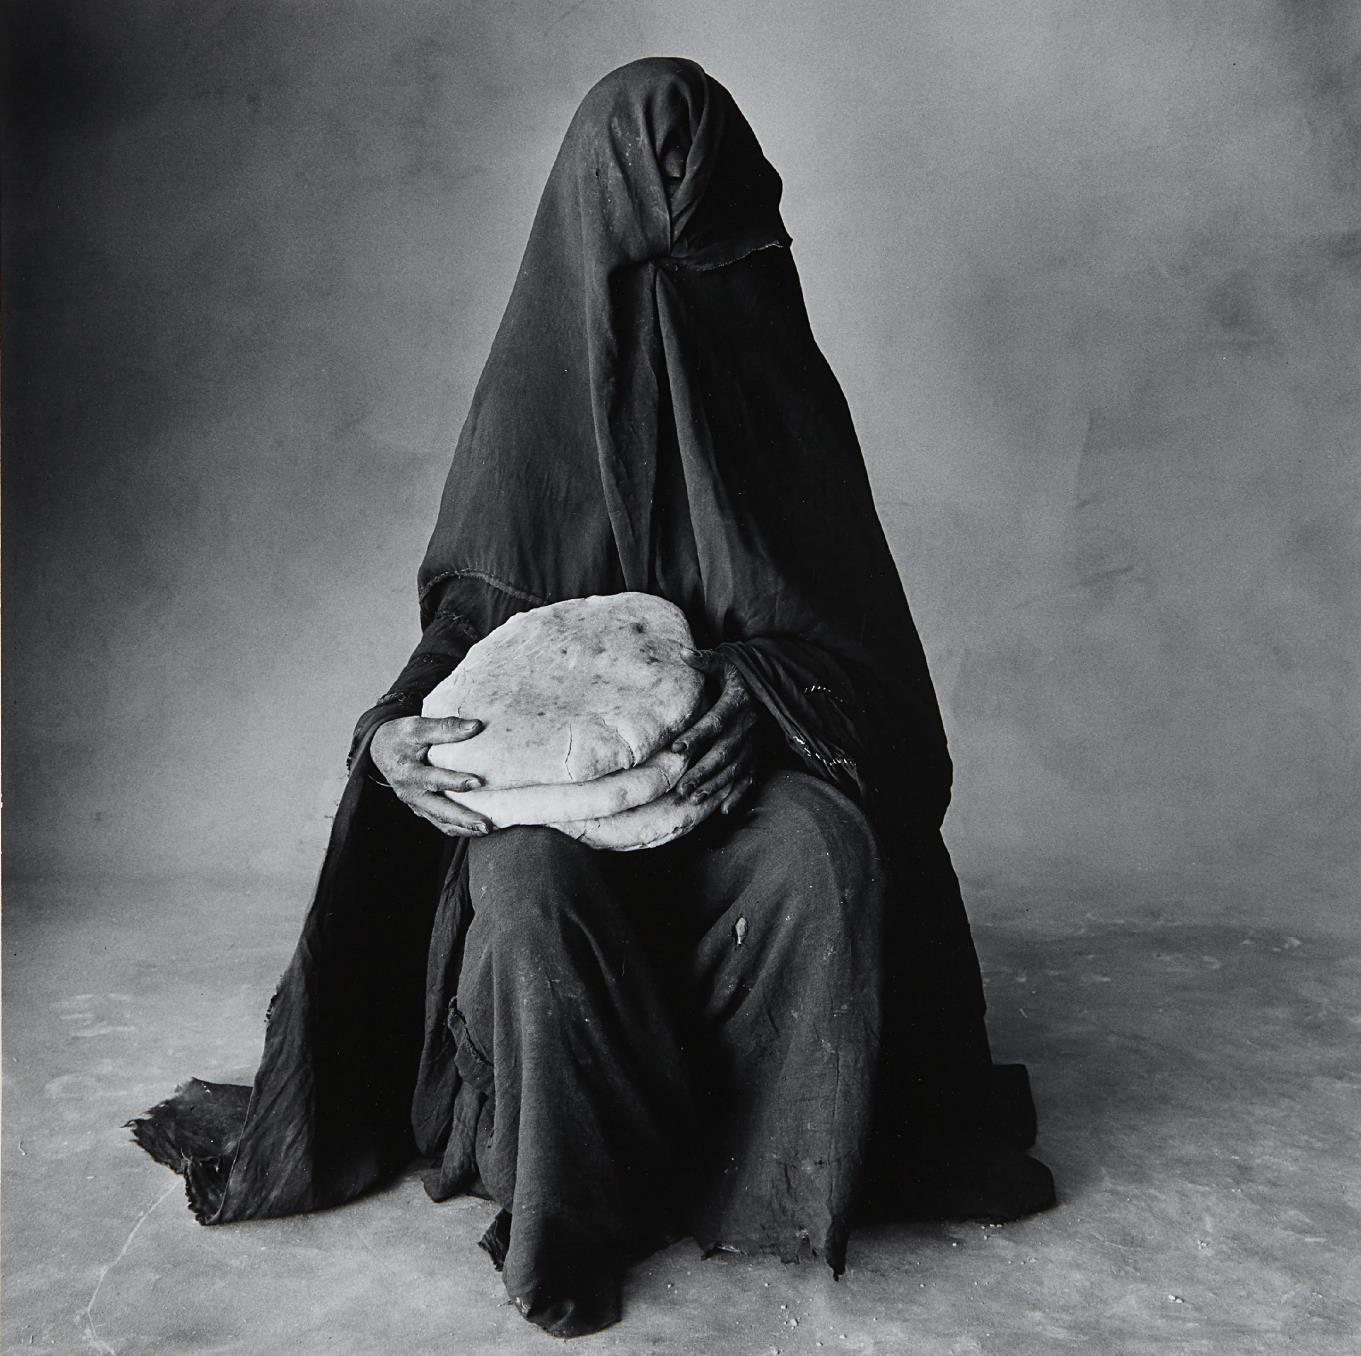 Irving Penn-Woman With Three Loaves, Morocco-1971